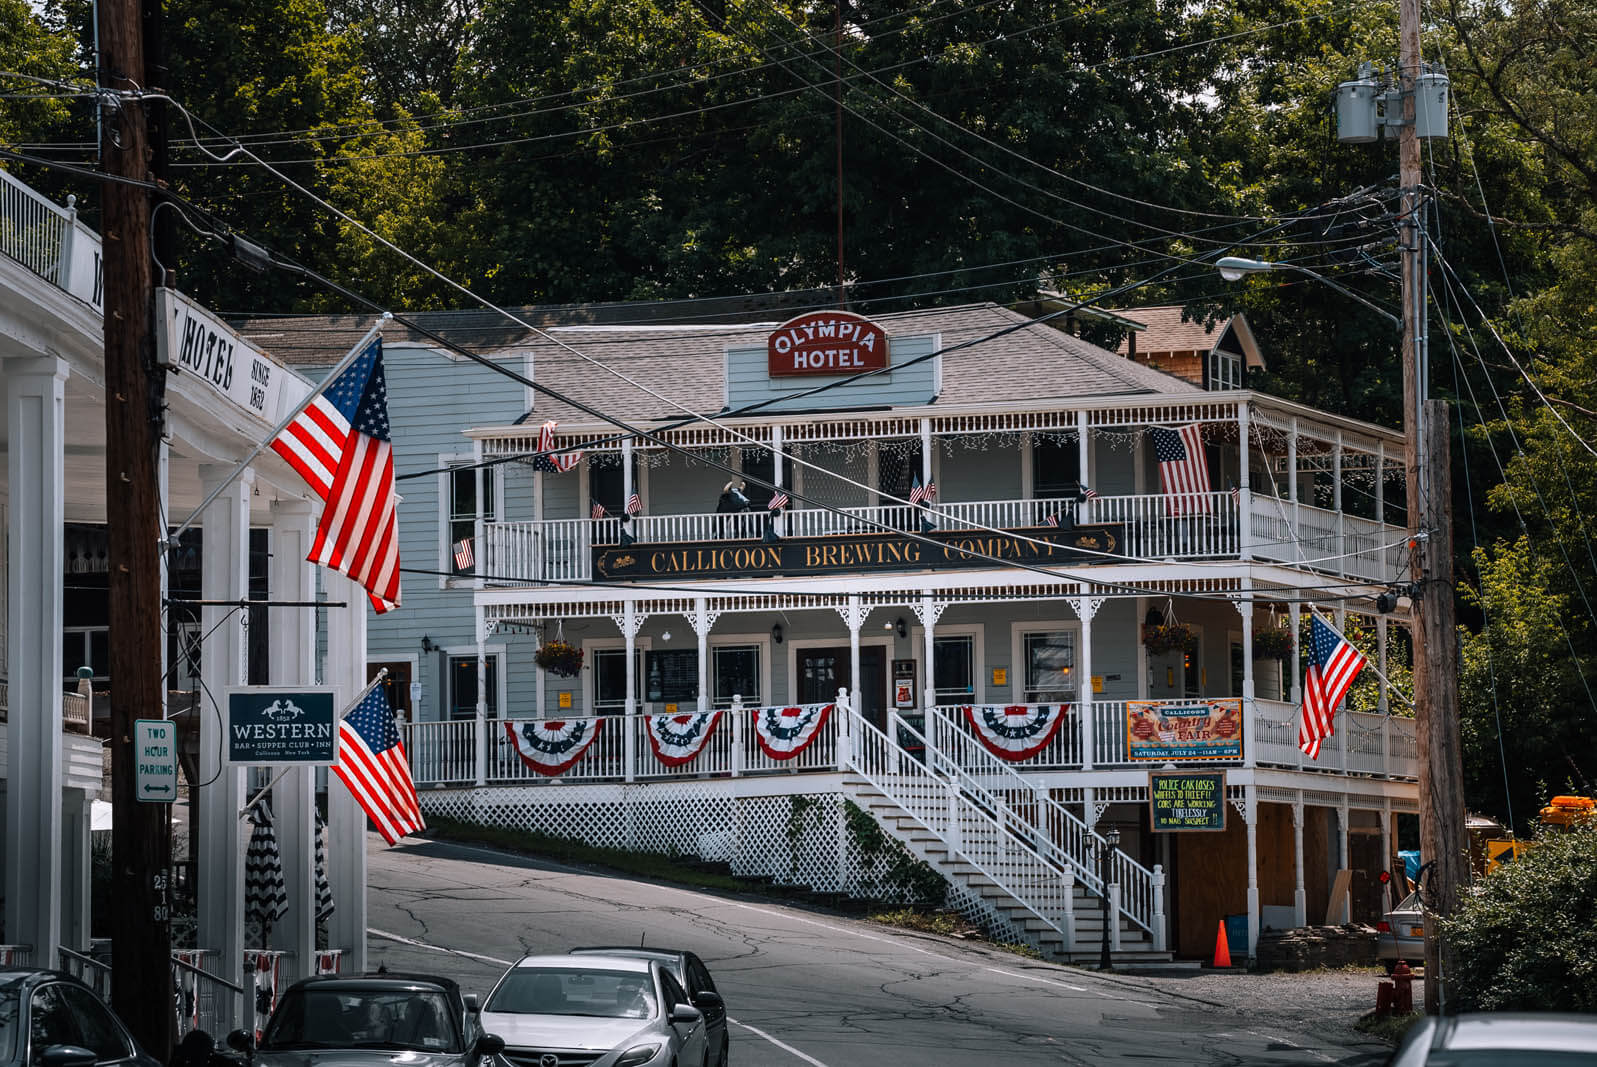 exterior of Callicoon Brewing Company in the Catskills new york